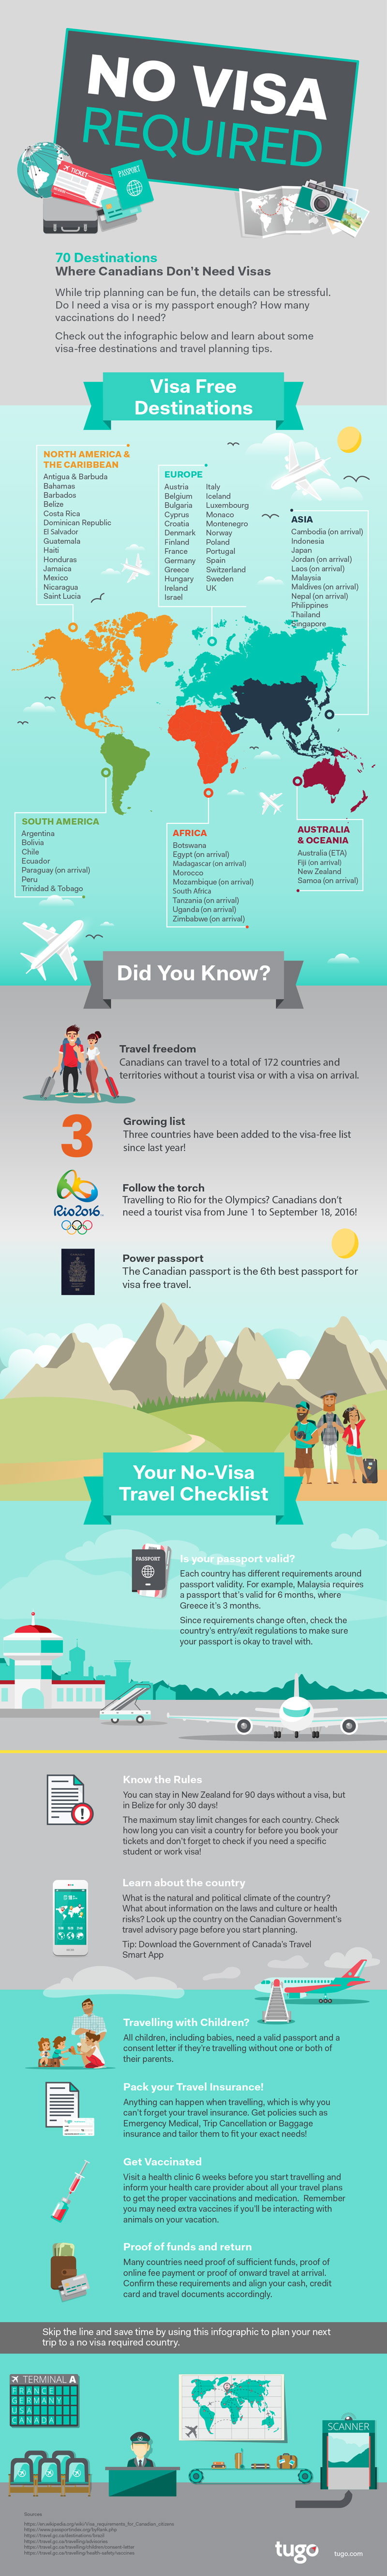 no-visa-required-canadian-travellers